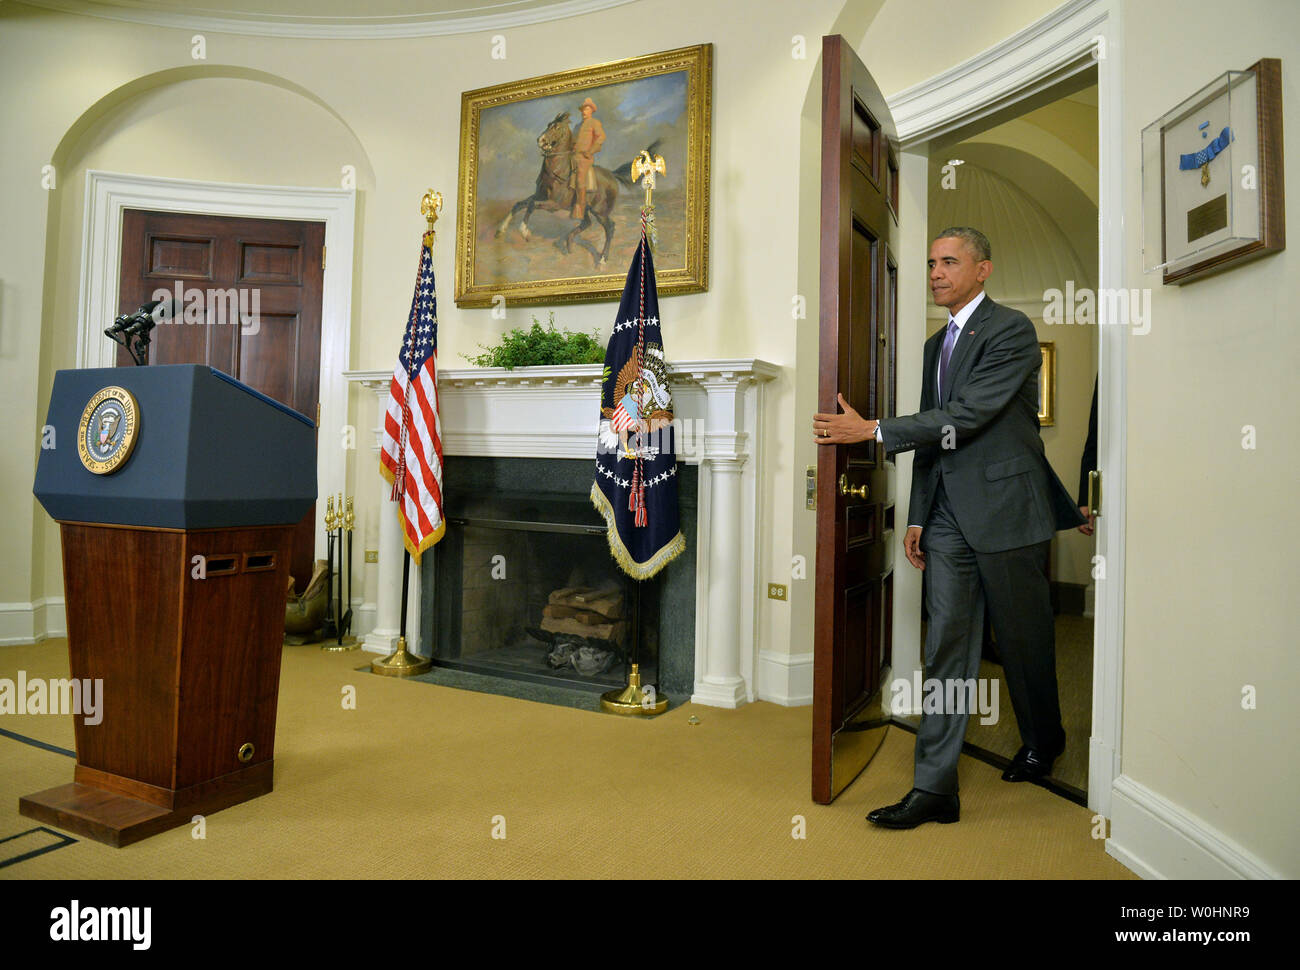 President Barack Obama arrives to speak on requesting Congress to authorize military action against the Islamic State, at the White House in Washington, D.C. on February 11, 2015.  Photo by Kevin Dietsch/UPI - Stock Image